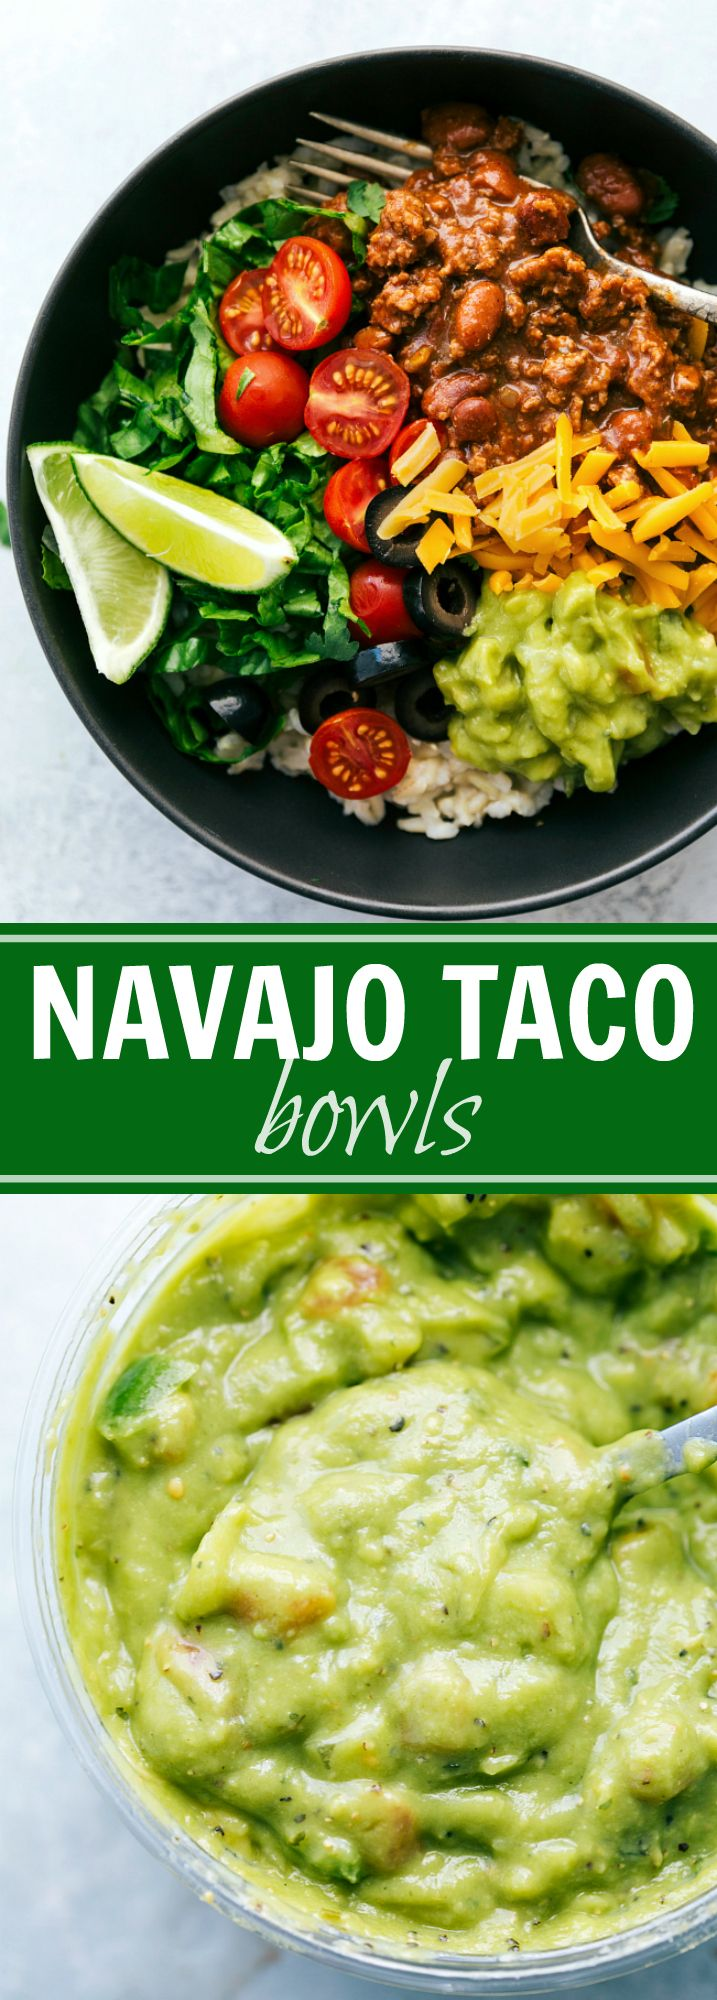 """Ditch the fry bread and serve these """"Navajo Tacos"""" over rice! A healthier, 30-minute, simple dinner recipe. PLUS a recipe for a """"Navajo Taco Salad"""""""